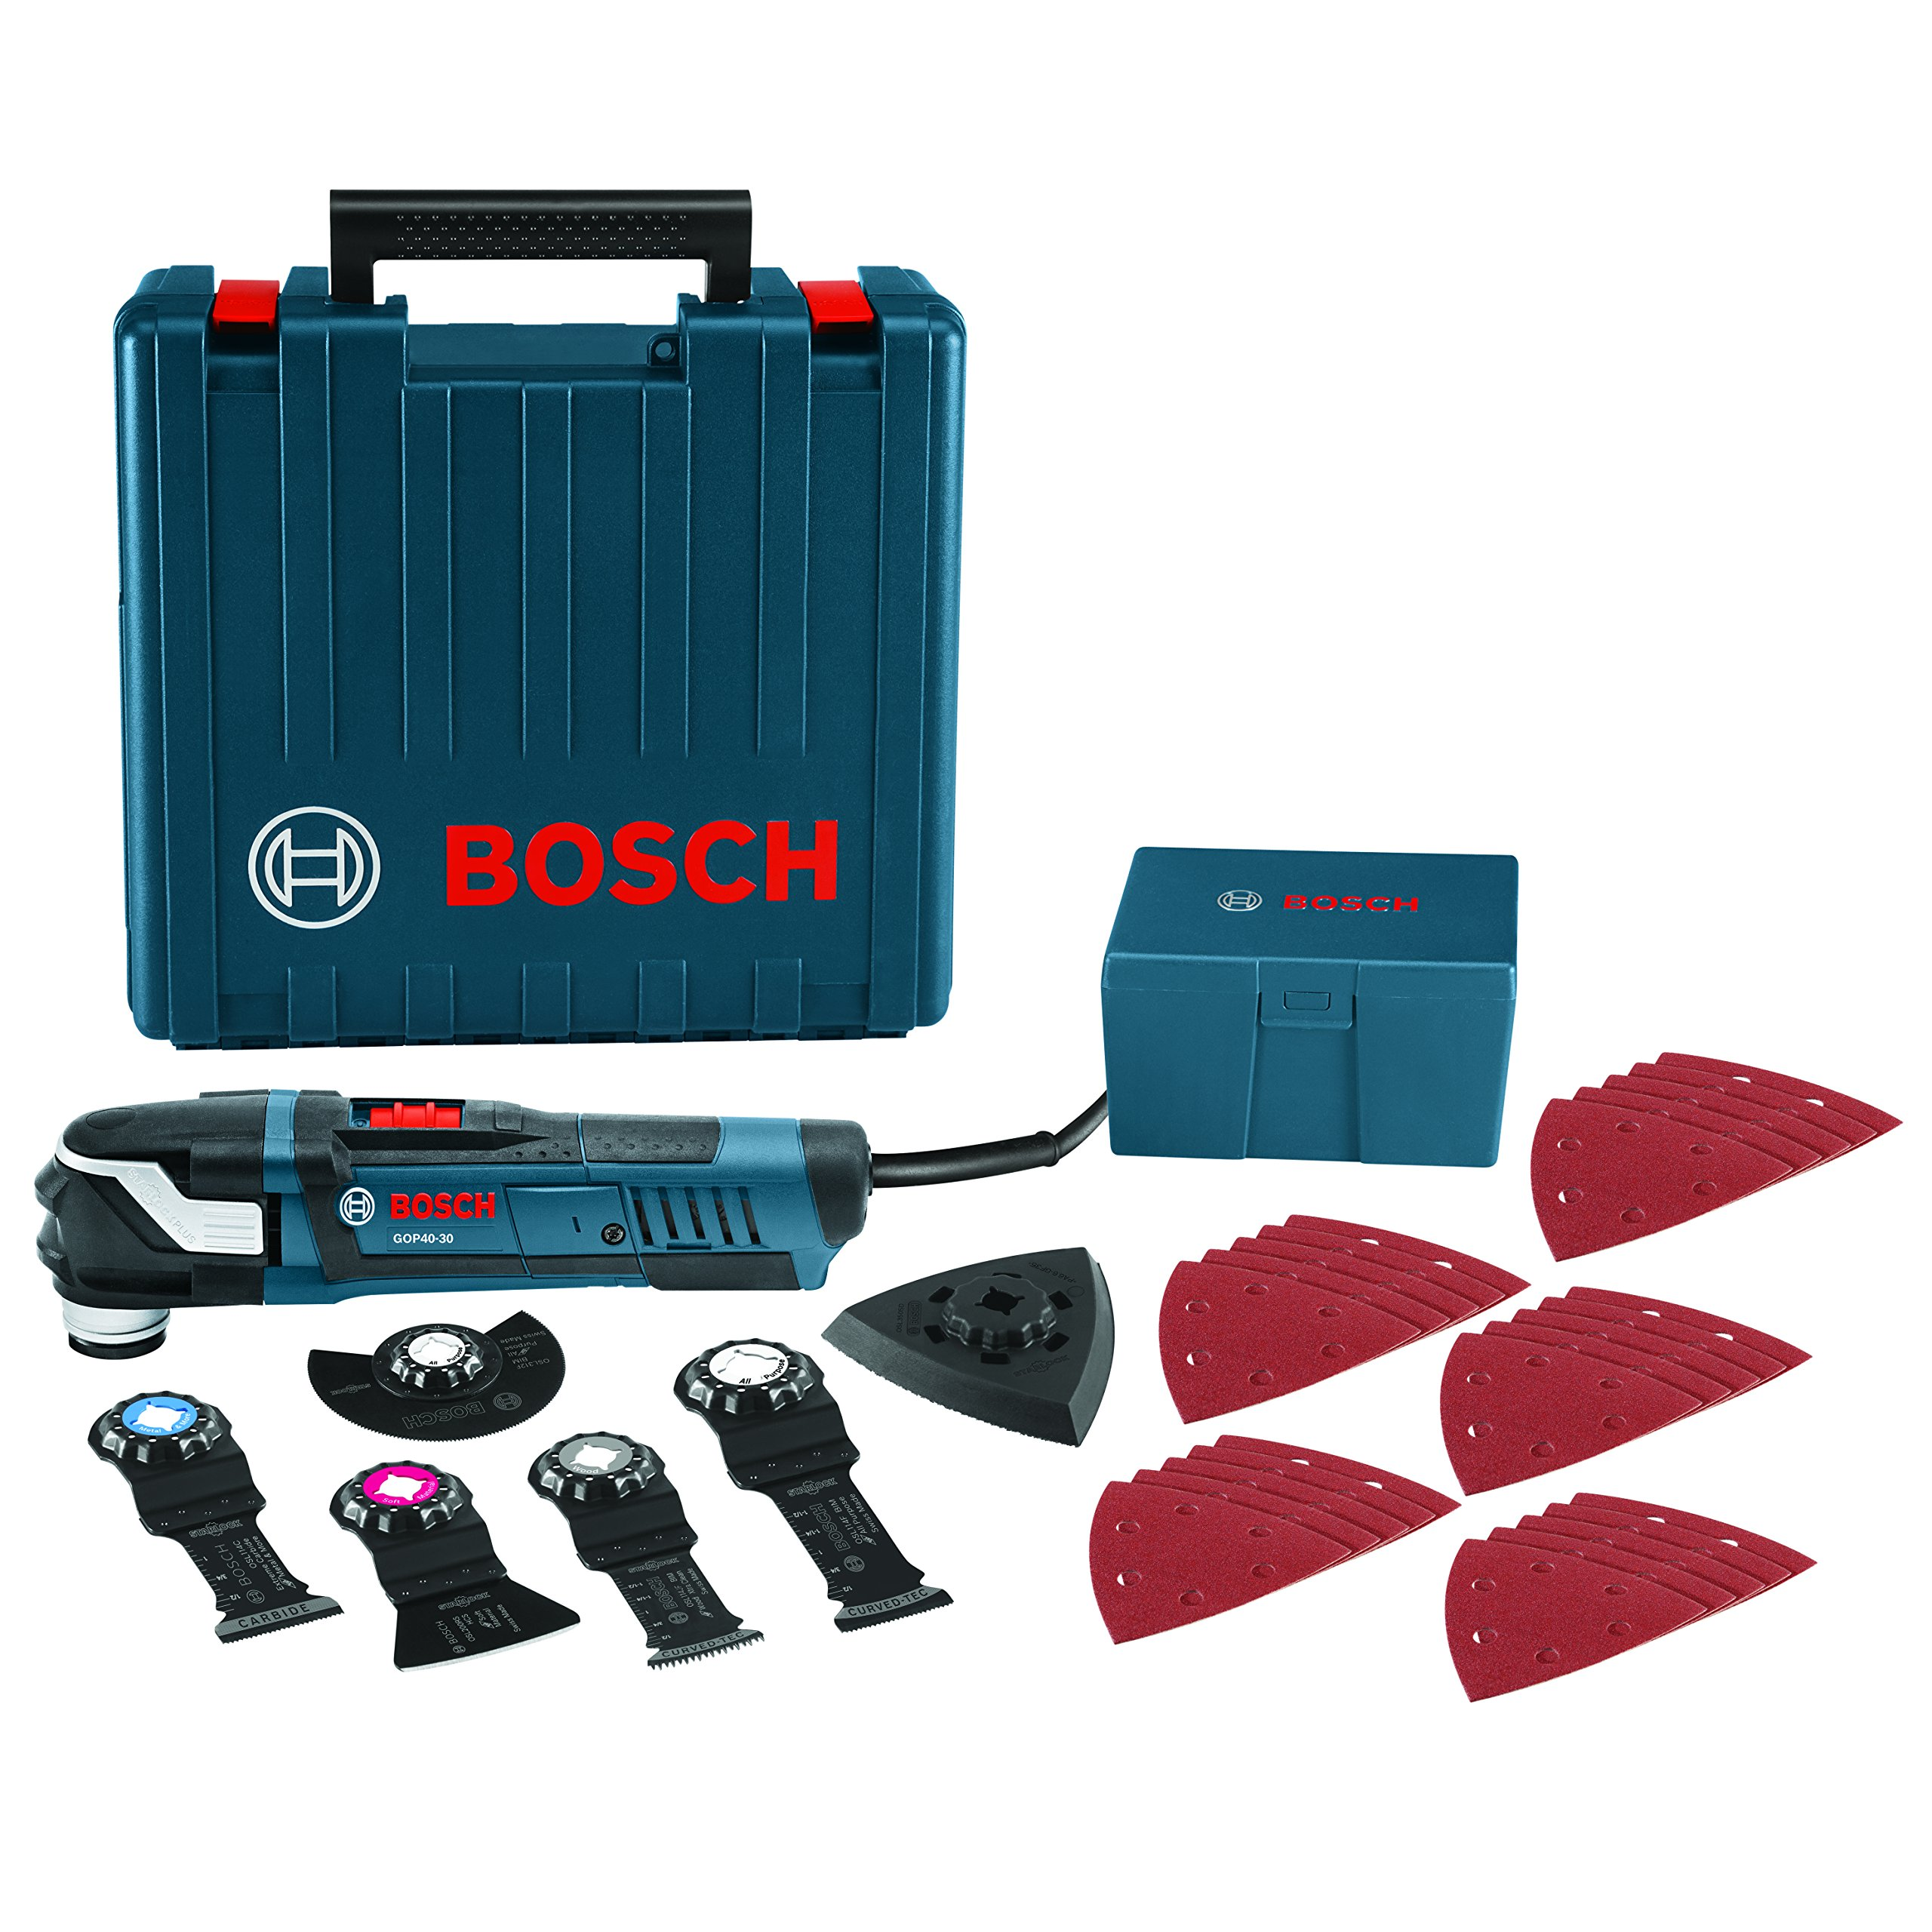 Bosch GOP40-30C StarlockPlus Oscillating Multi-Tool Kit with Snap-In Blade Attachment by Bosch